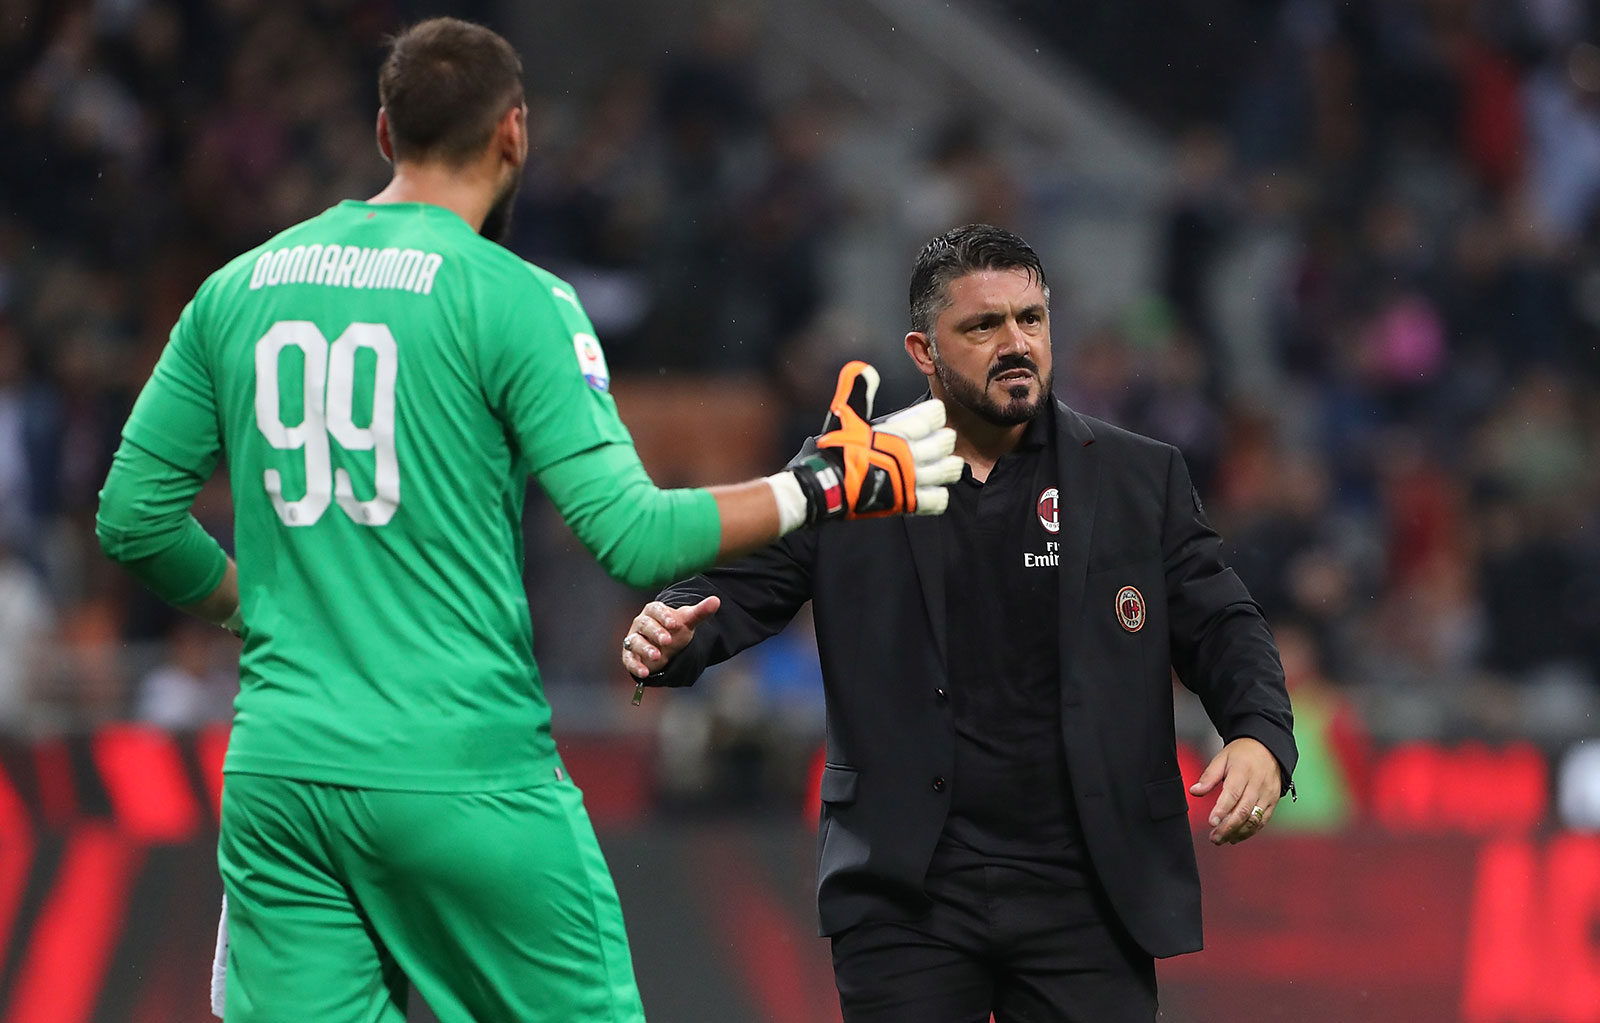 Gennaro Gattuso and Gianluigi Donnarumma at the end of Milan-Roma at Stadio San Siro on August 31, 2018. (Photo by Marco Luzzani/Getty Images)